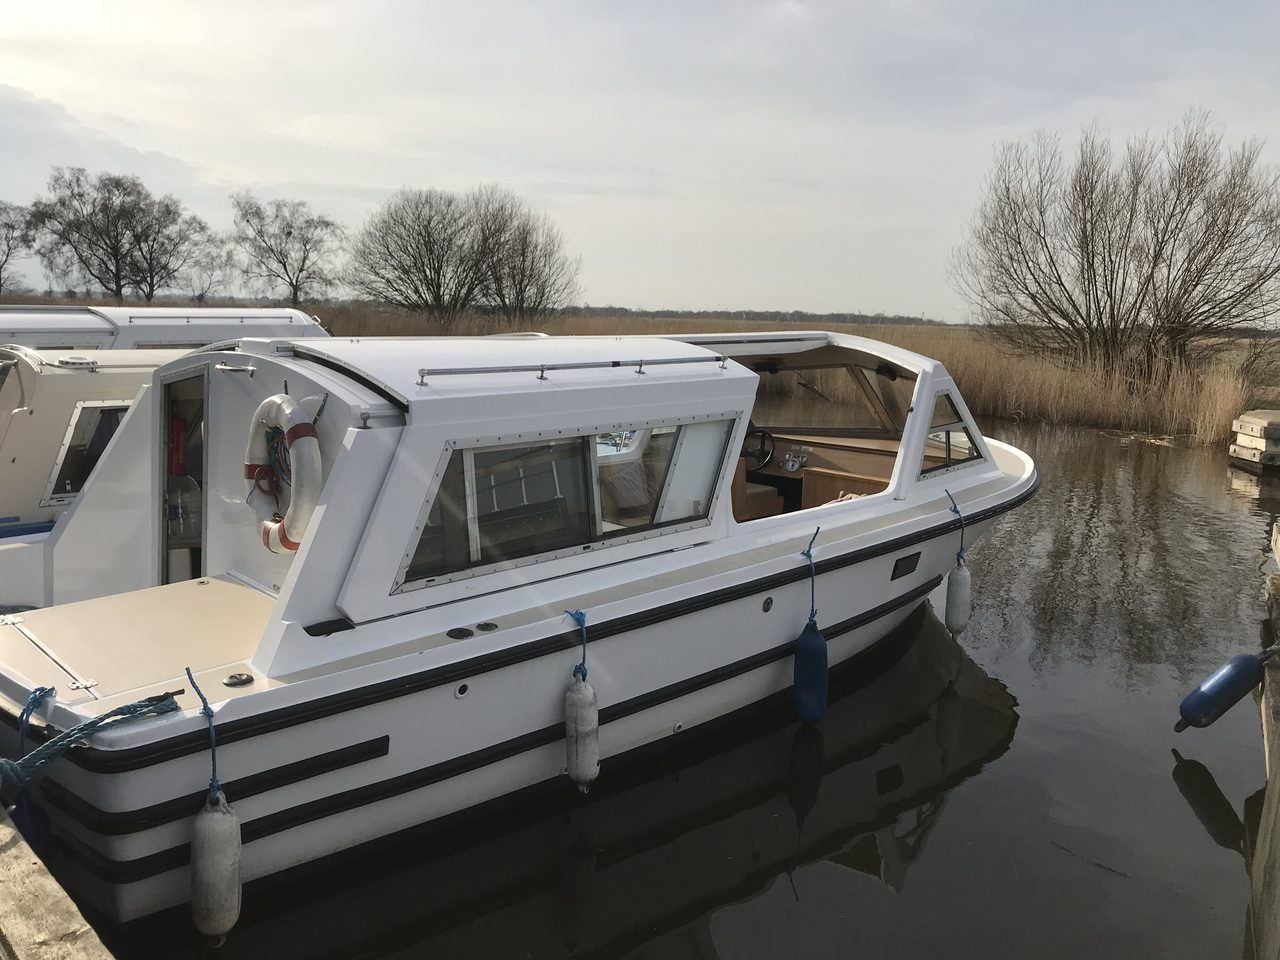 Martham Ferry Day Boat Hire